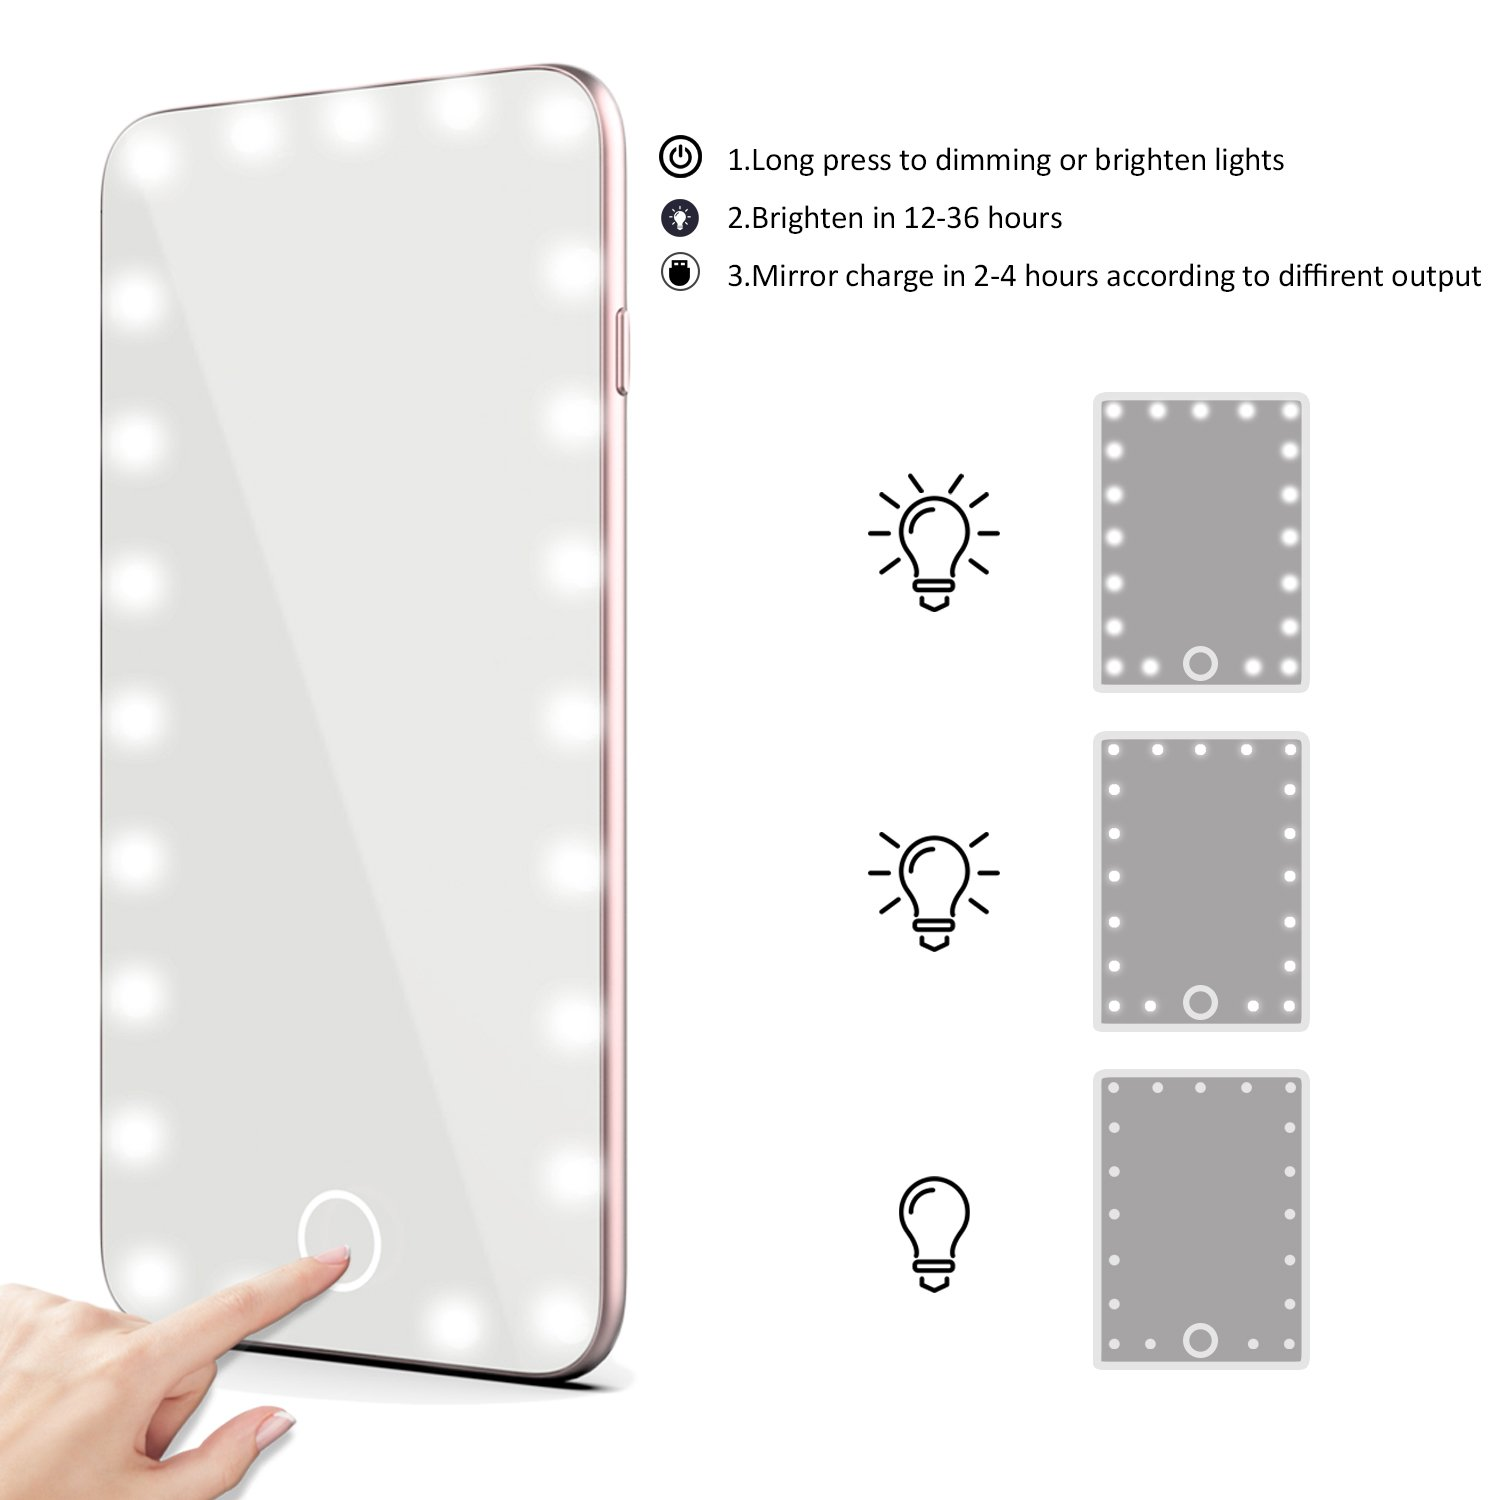 XBUTY Makeup Mirror with Lights Hollywood Style Lighted Vanity Mirror 5.5 Inch Small Hand Mirror Portable Cosmetic Mirror Dimmable Travel Handheld LED Mirror with USB Charging (Rose gold) by XBUTY (Image #4)